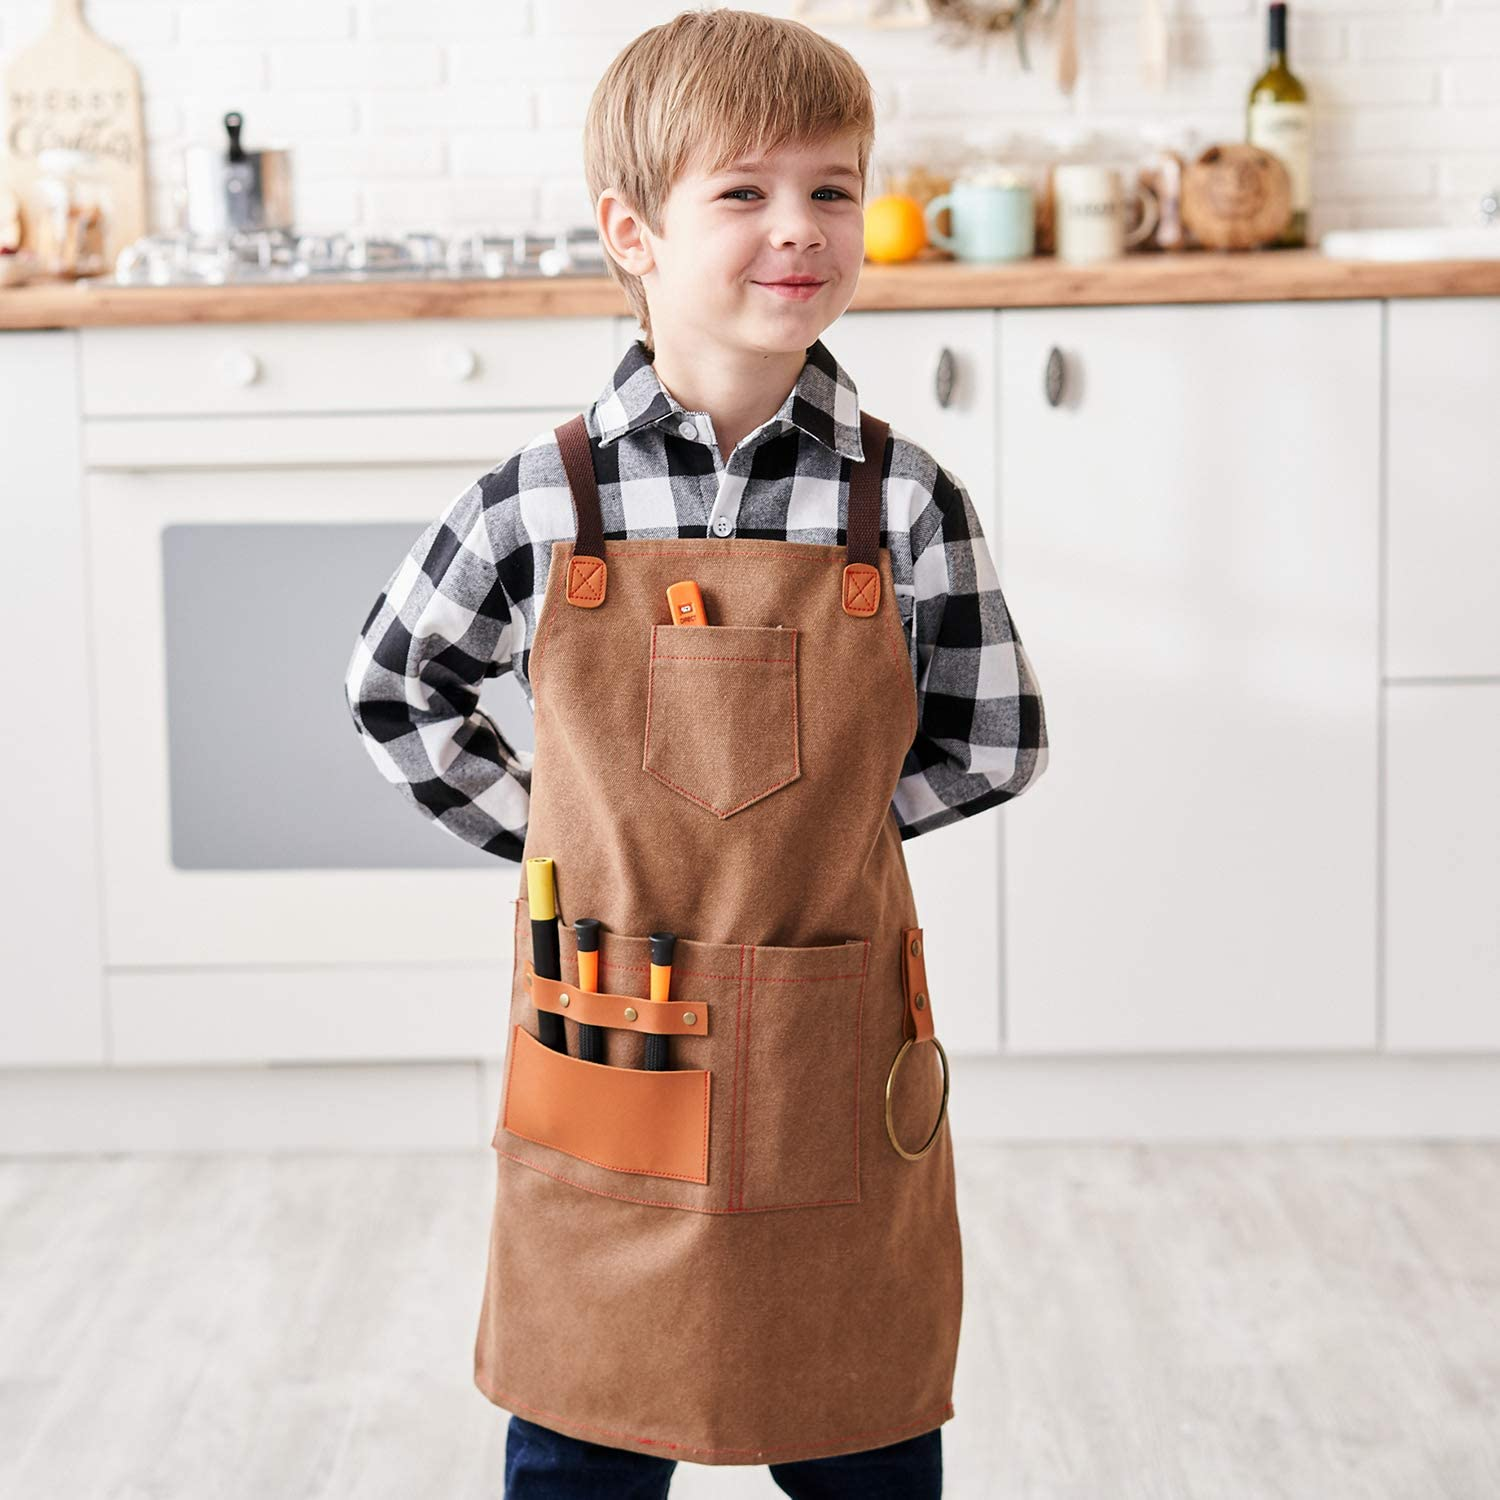 Durable Canvas Tool Apron for Son Style Drew Golden Rod NEOVIVA Heavy Duty Work Apron for Kid Boys with Pockets and Adjustable Cross-back Straps